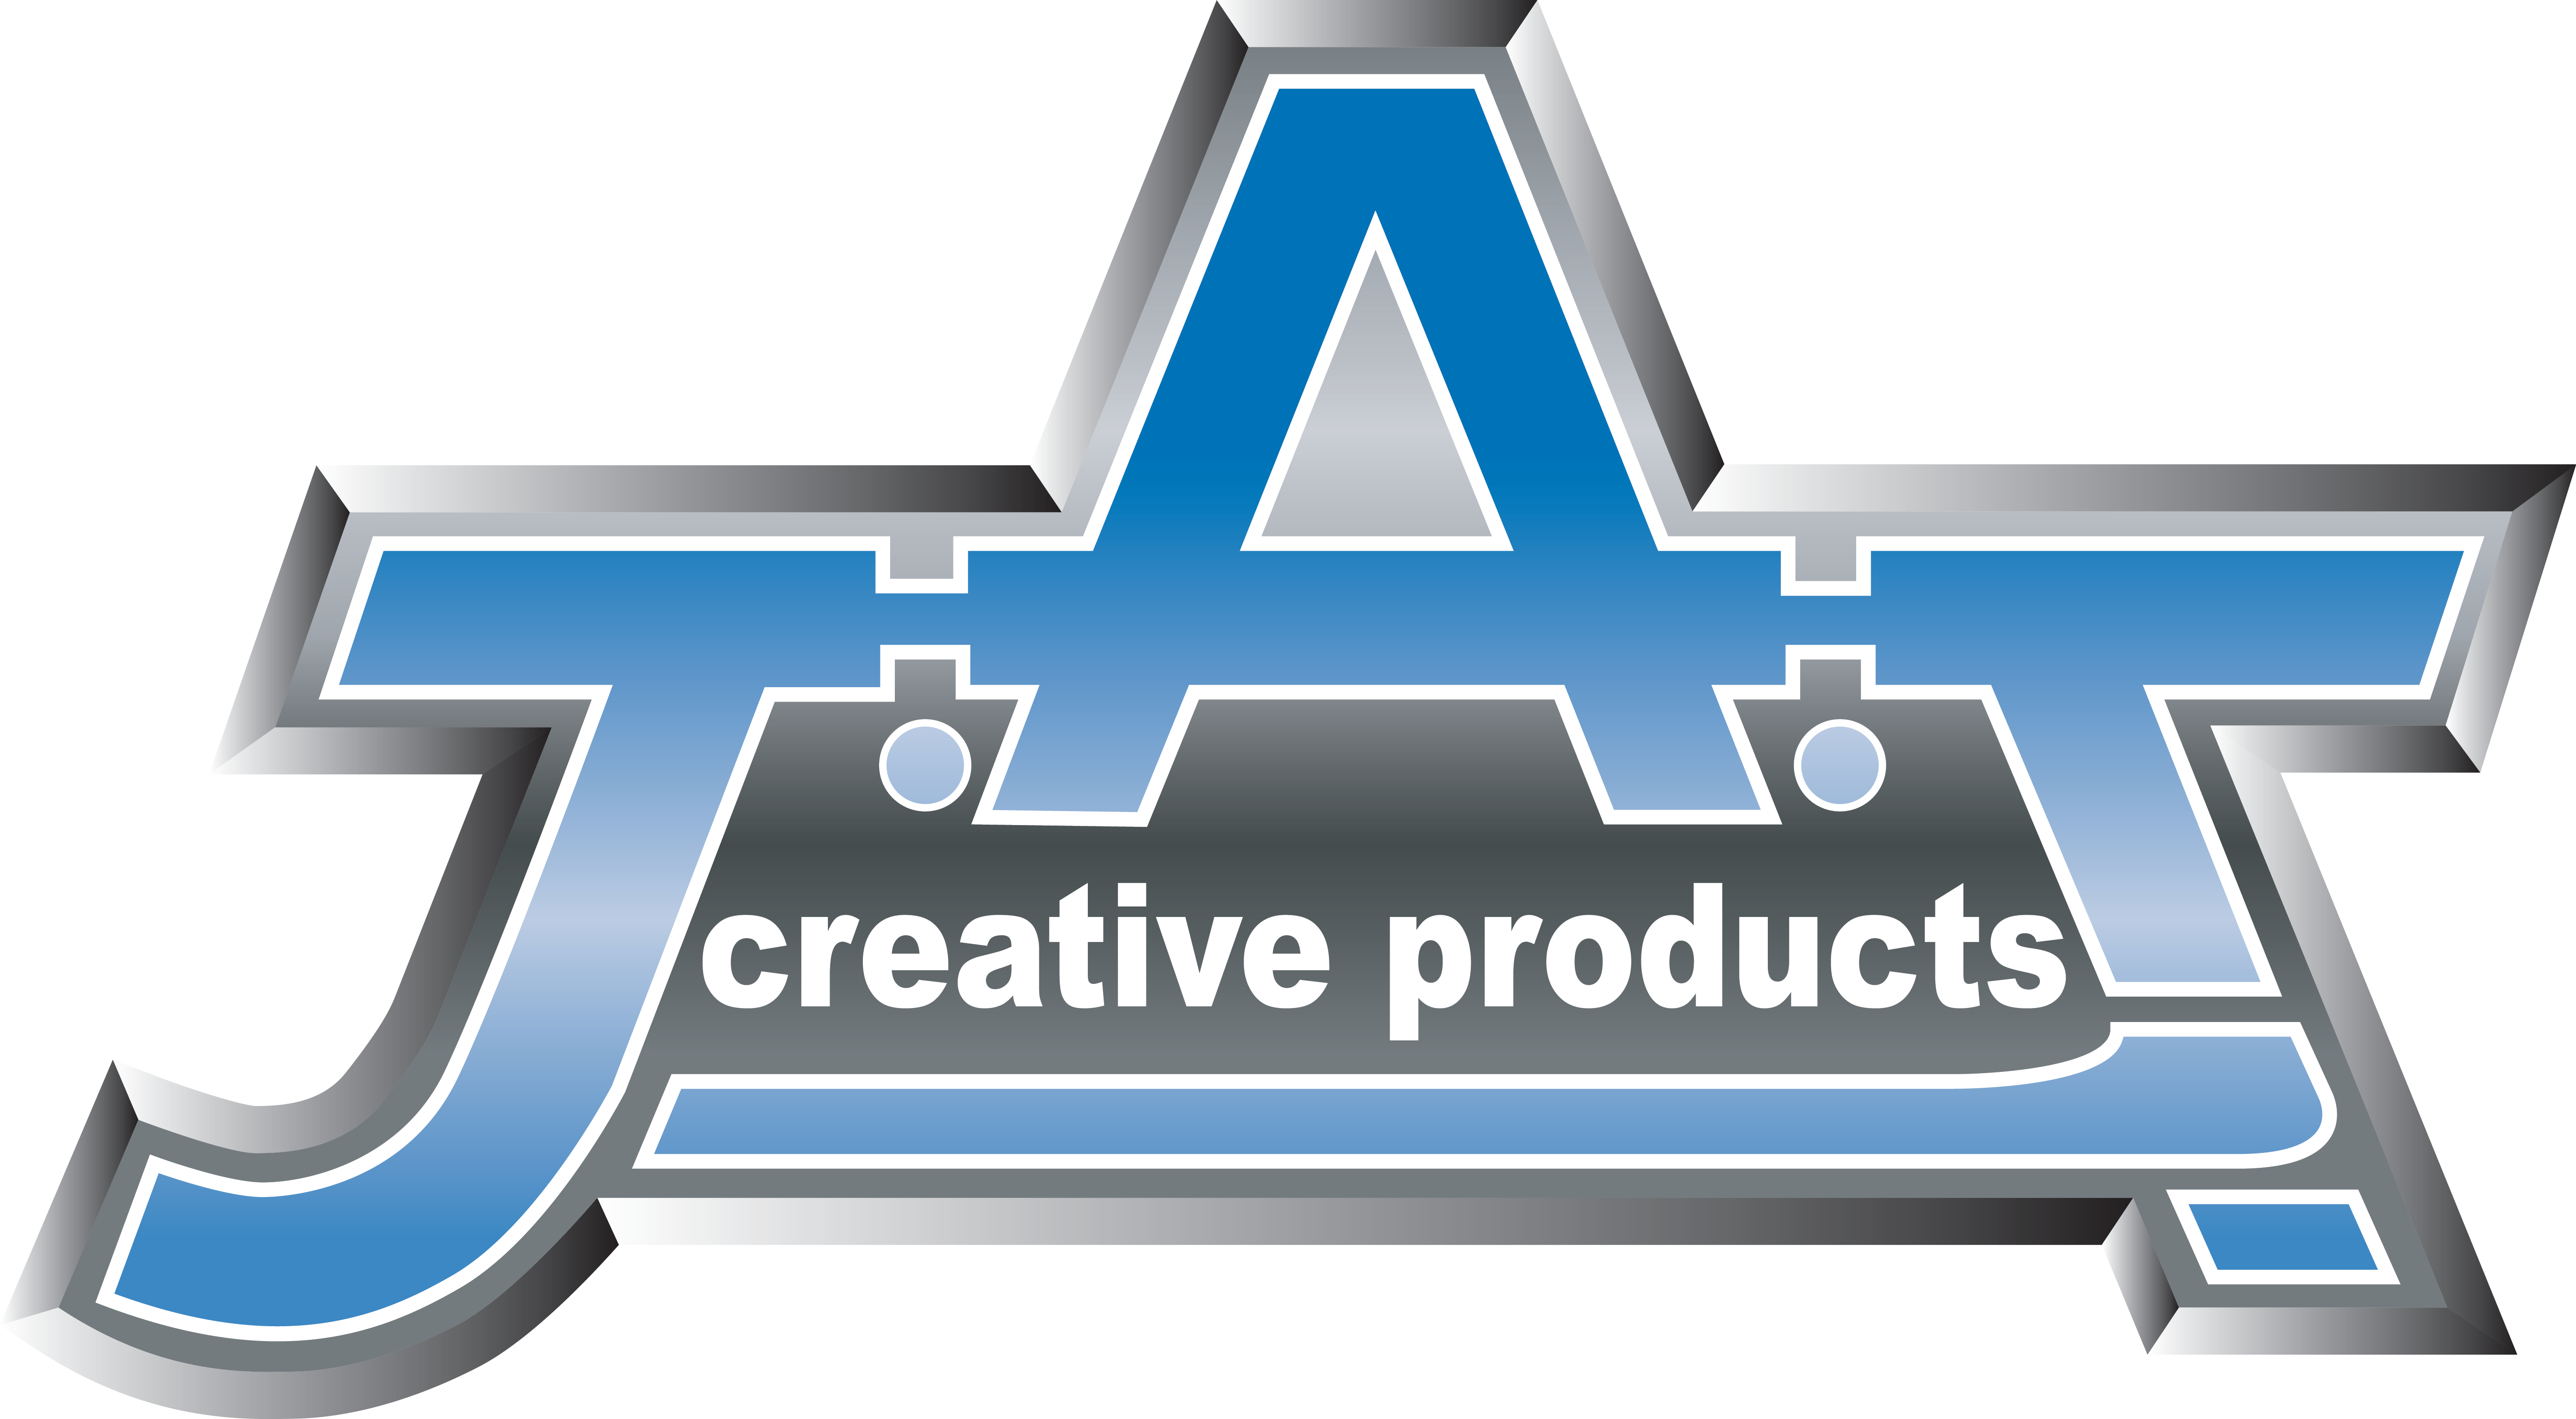 JAT Creative Products